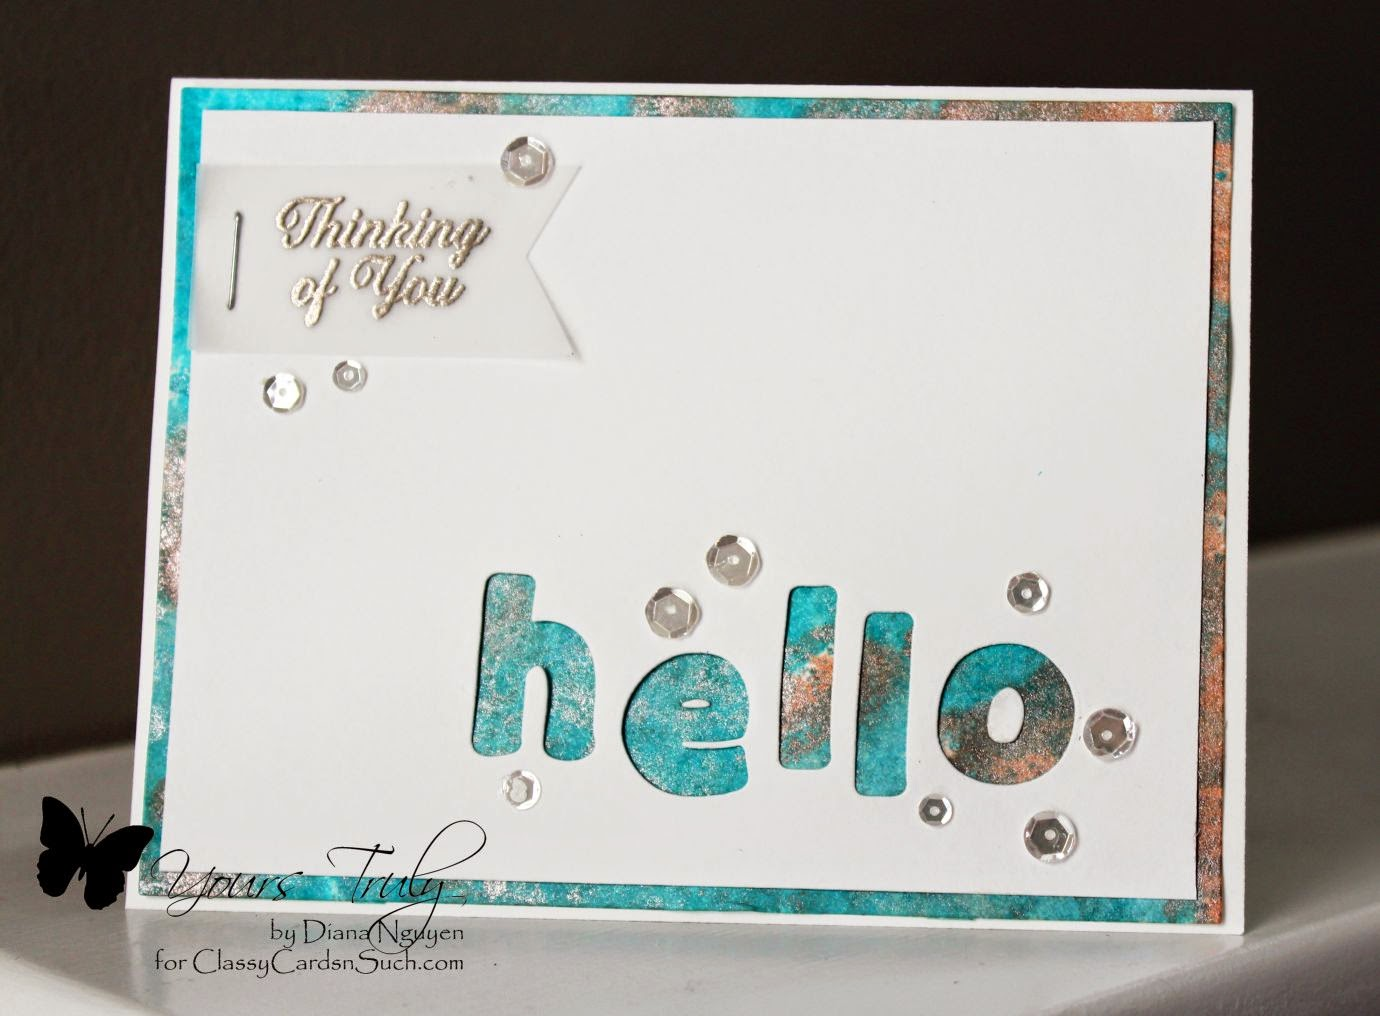 Diana Nguyen, Our Daily Bread Designs, hello card, negative die cutting